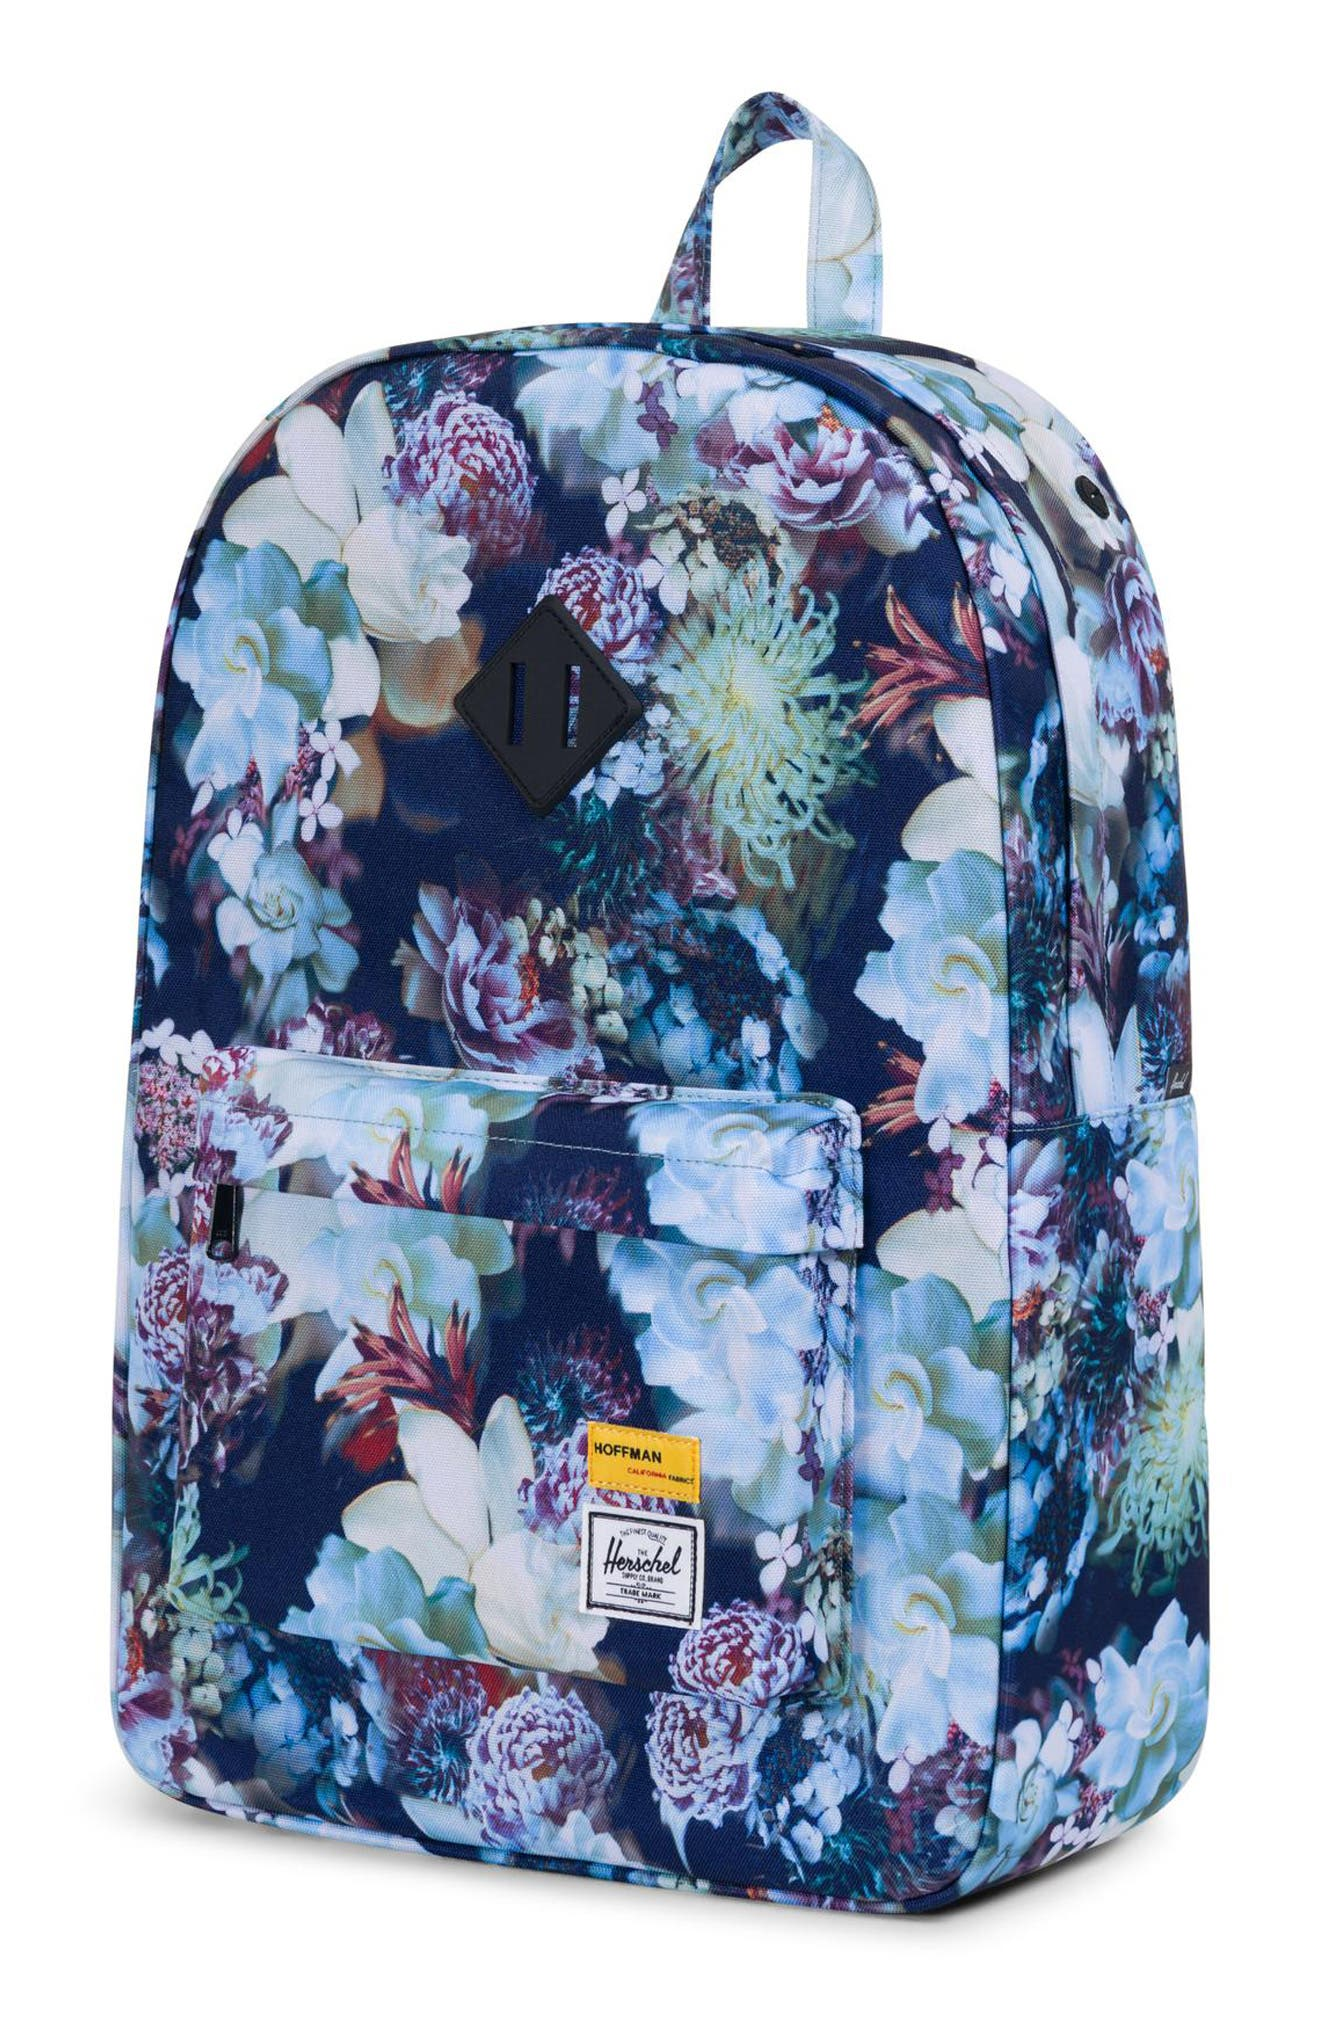 Heritage Hoffman Backpack,                             Alternate thumbnail 4, color,                             WINTER FLORAL